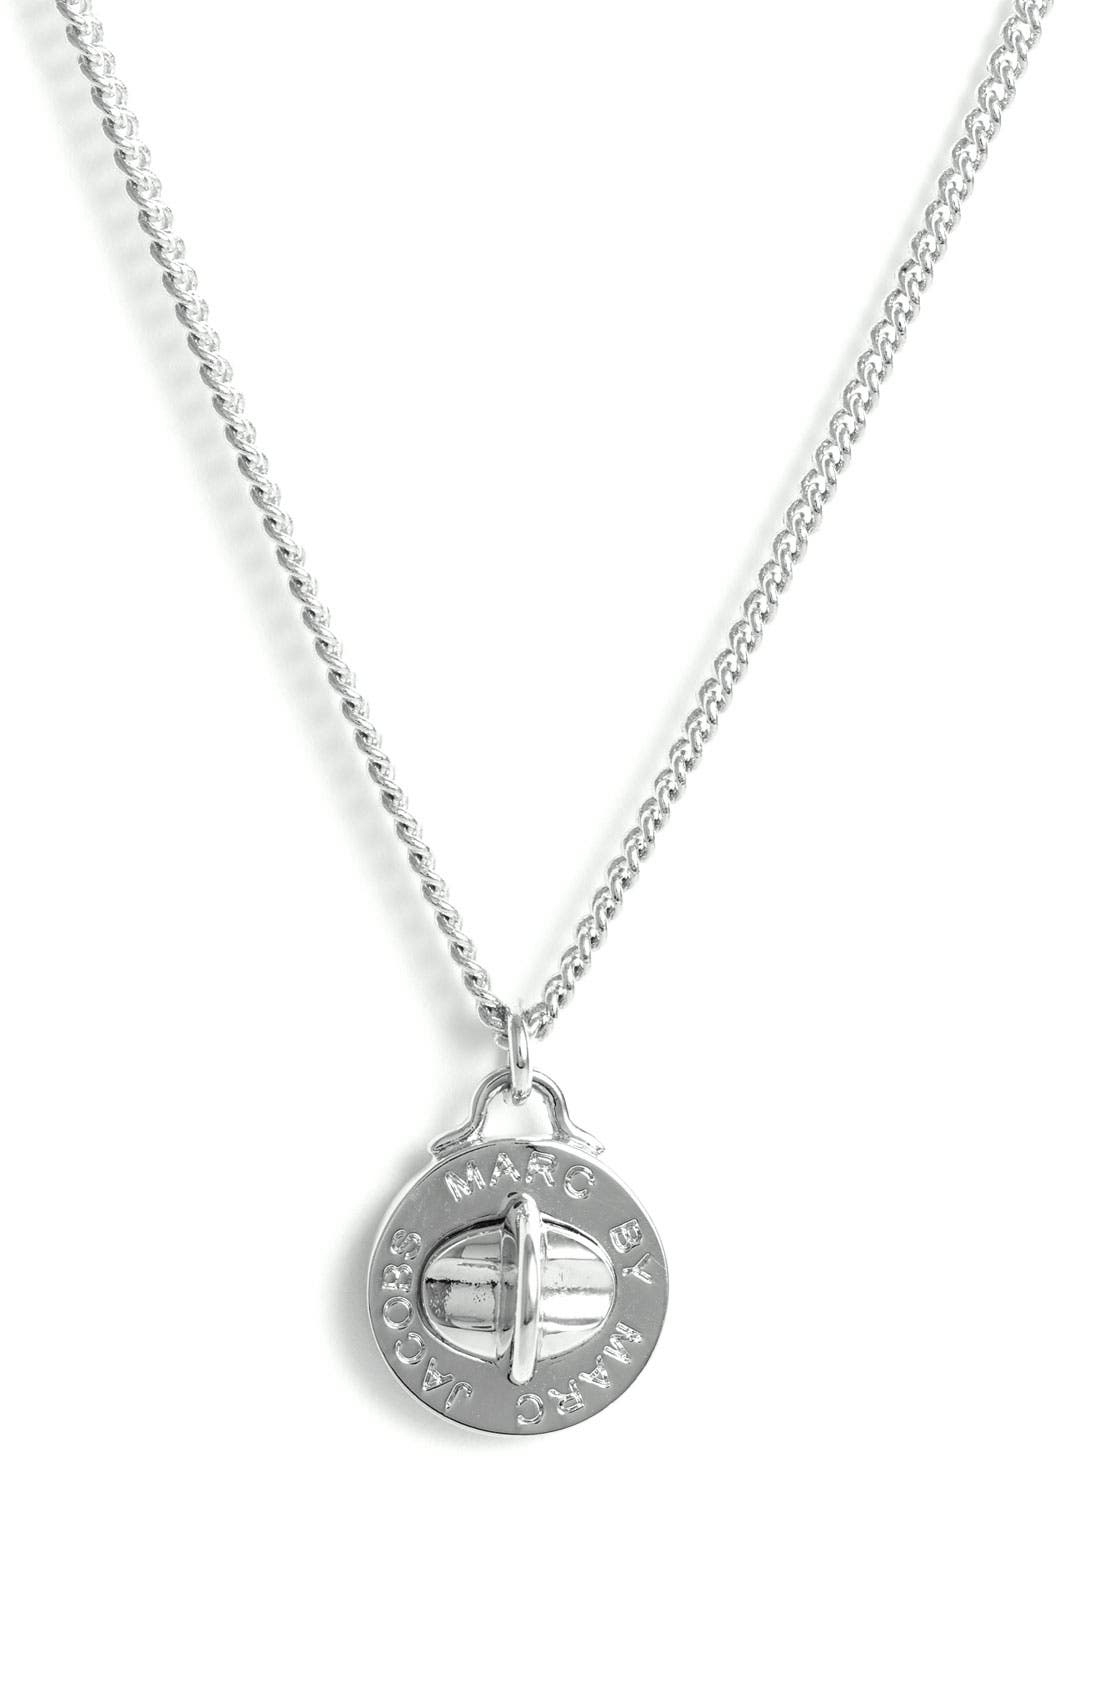 Main Image - MARC BY MARC JACOBS 'Turnlock' Pendant Necklace